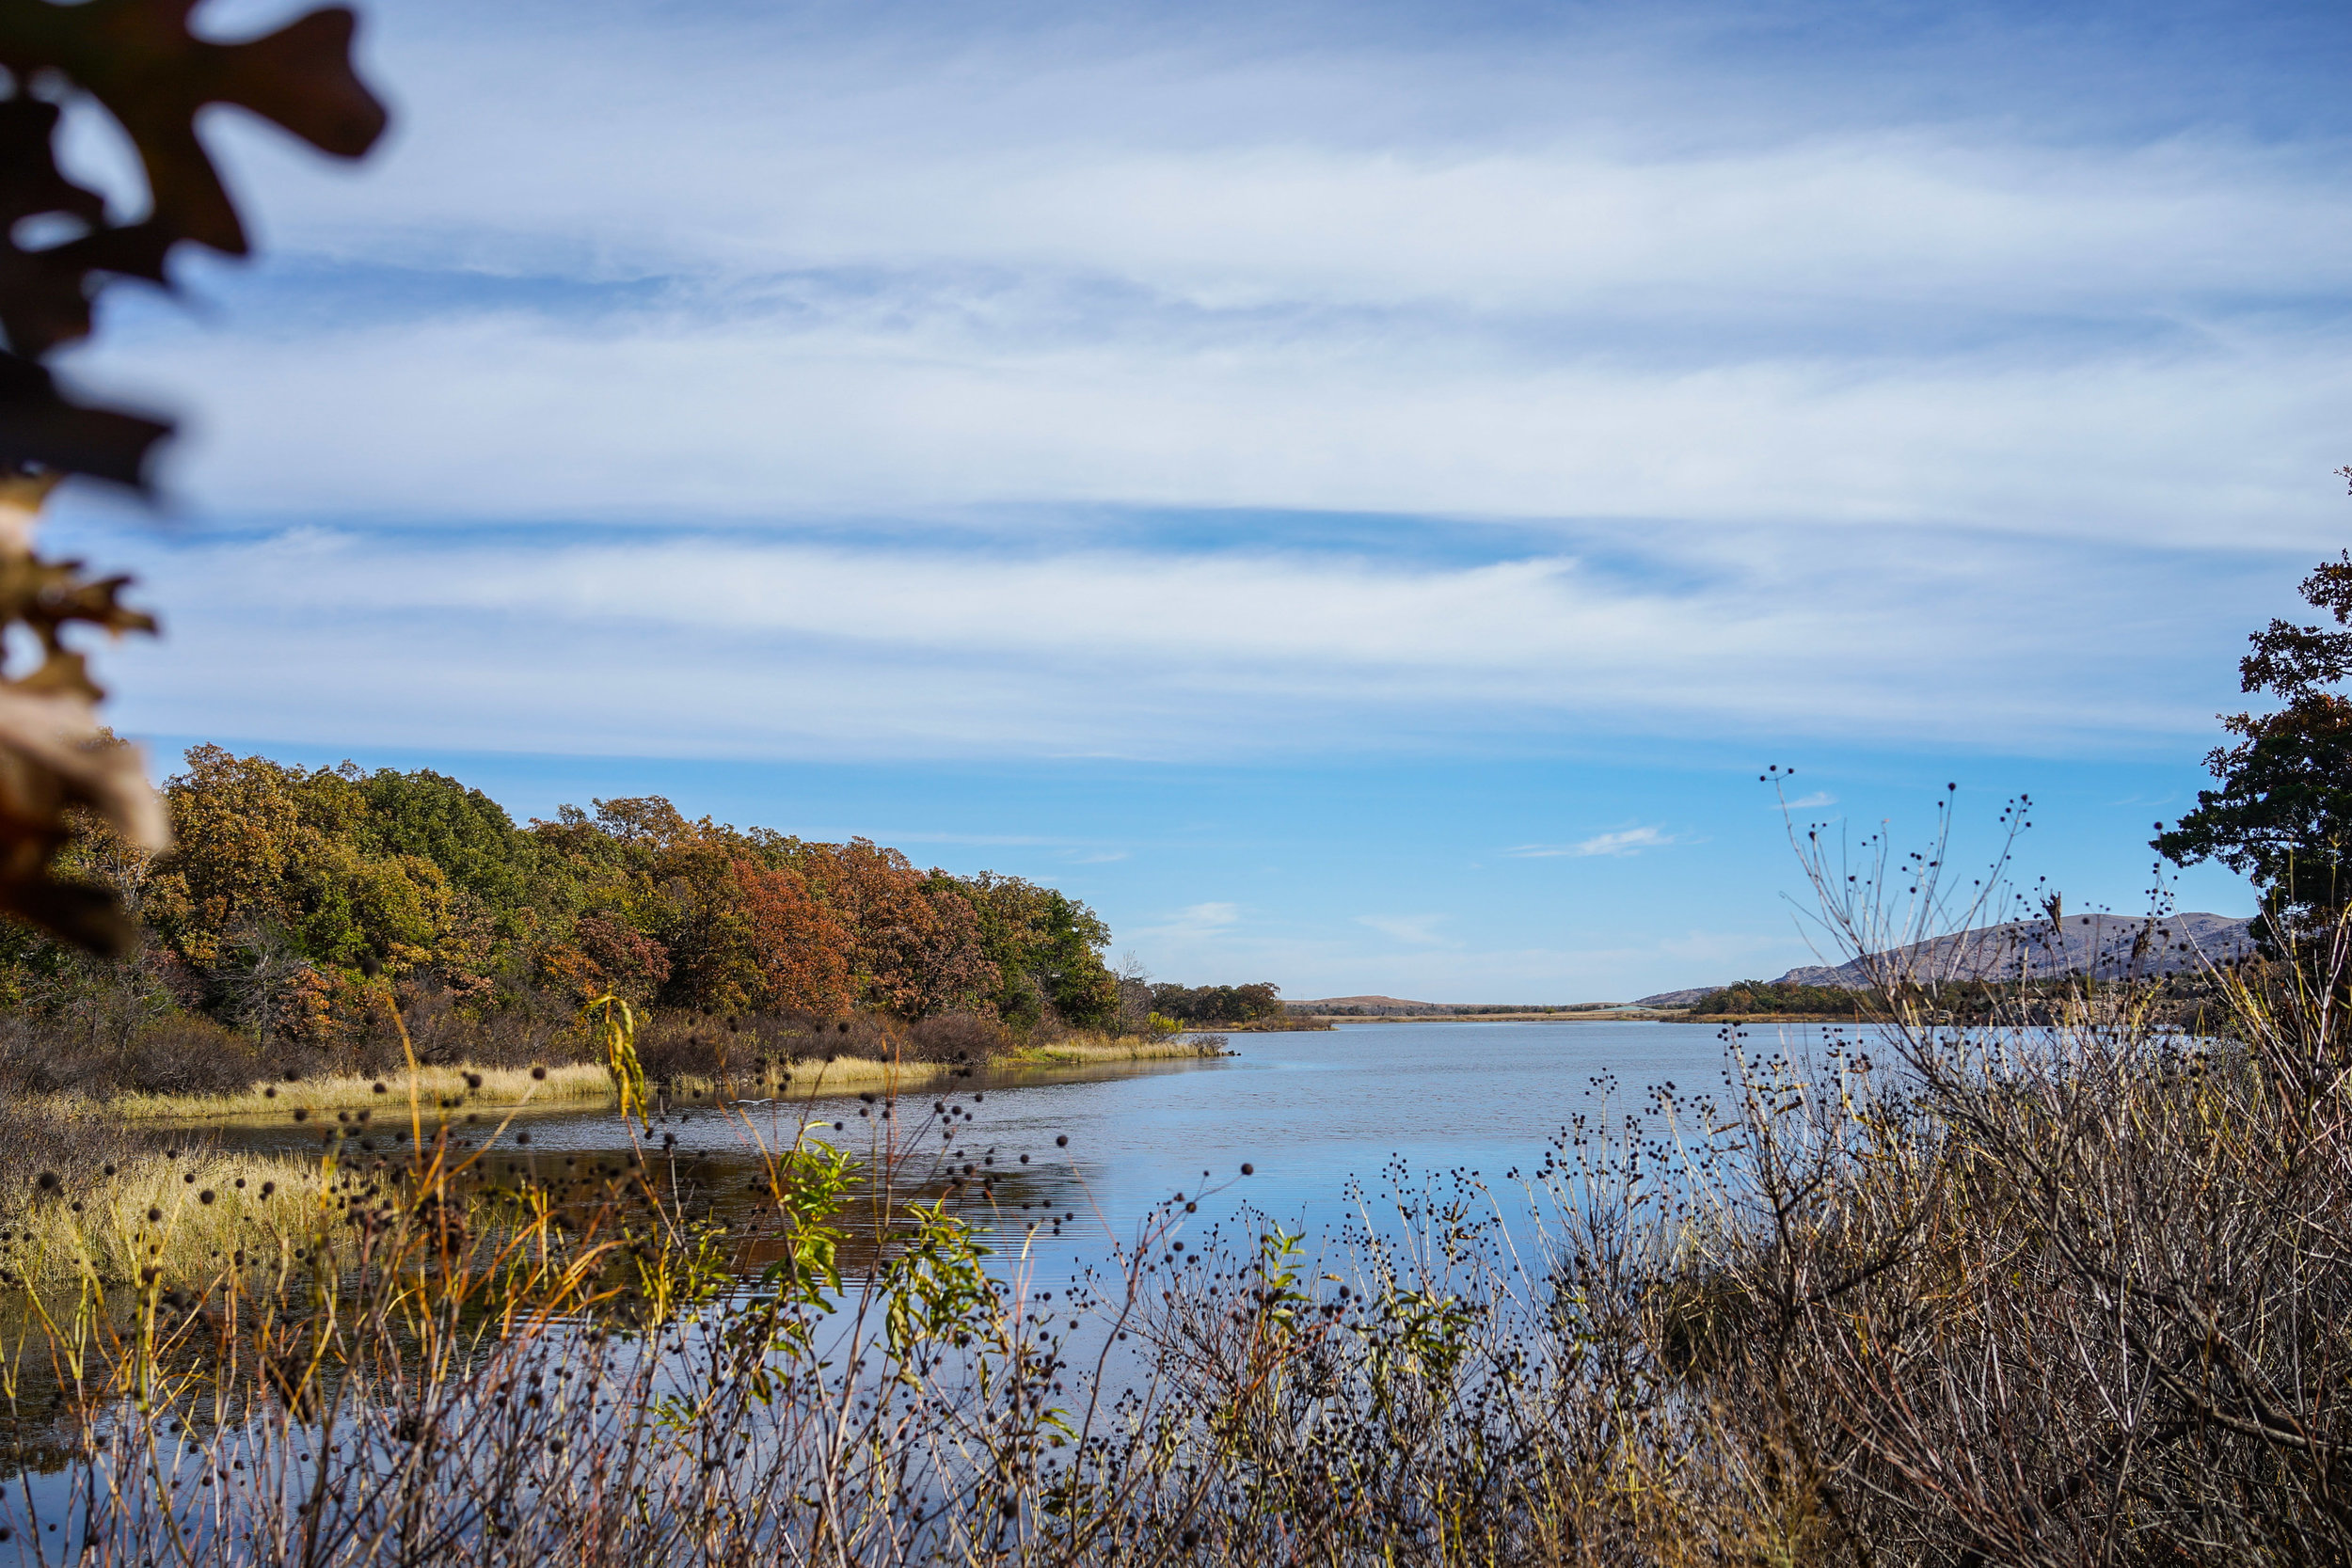 The view of Quanah Parker Lake from the hiking trail.